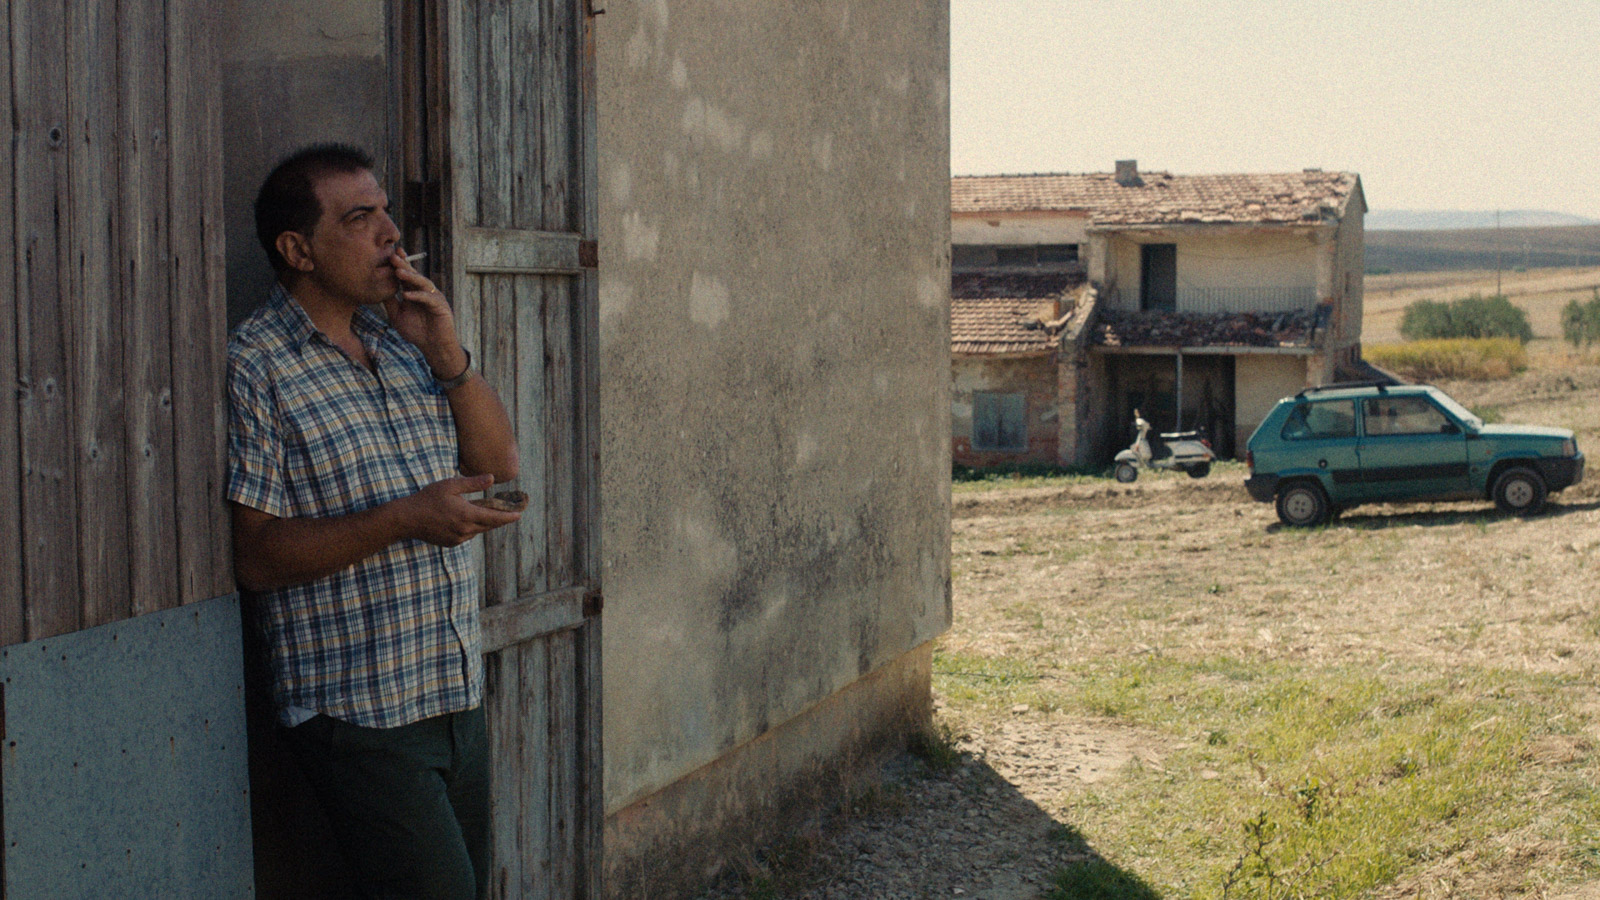 Gli ultimi a vederli vivere, The Last to See Them), Feature 80′, Cinematographer: Katharina Schelling, Director: Sara Summa, Production: German Film and Television Academy, 1:1,85 2K Arri Amira + Zeiss Ultra Prime Lenses, Berlinale Sektion Forum 2019, www.katharinaschelling.com